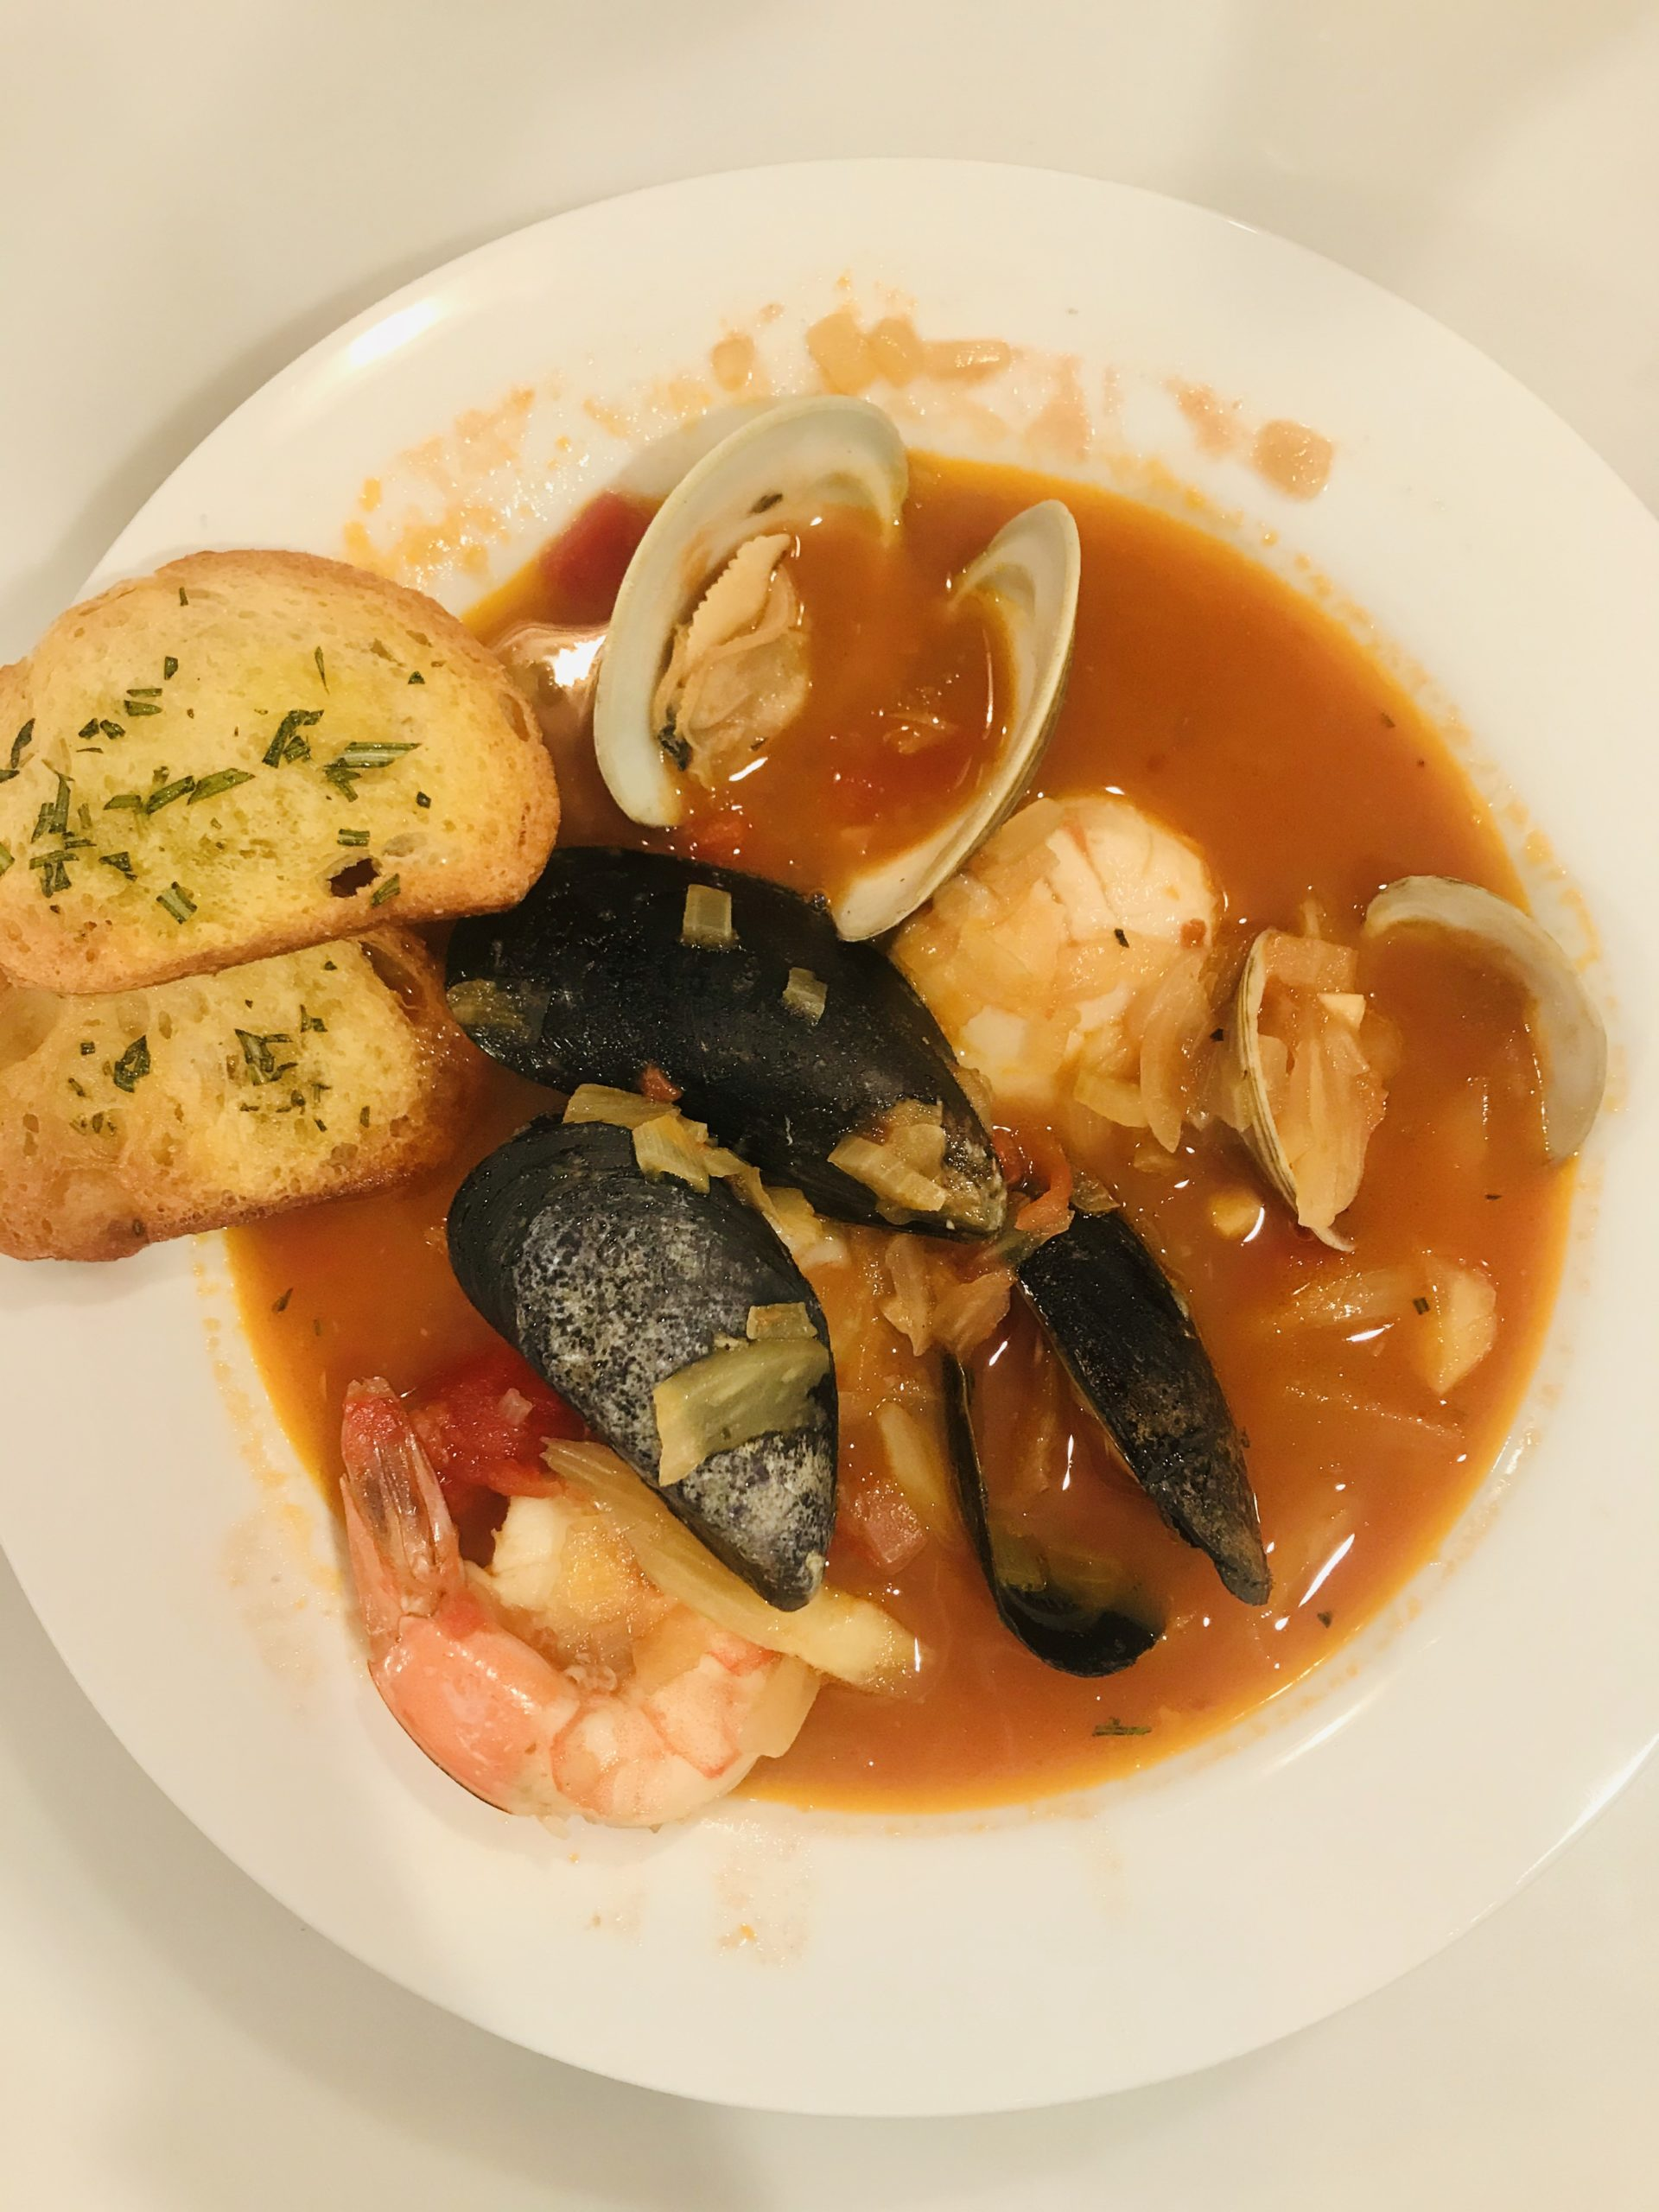 Saturdays are for Cioppino